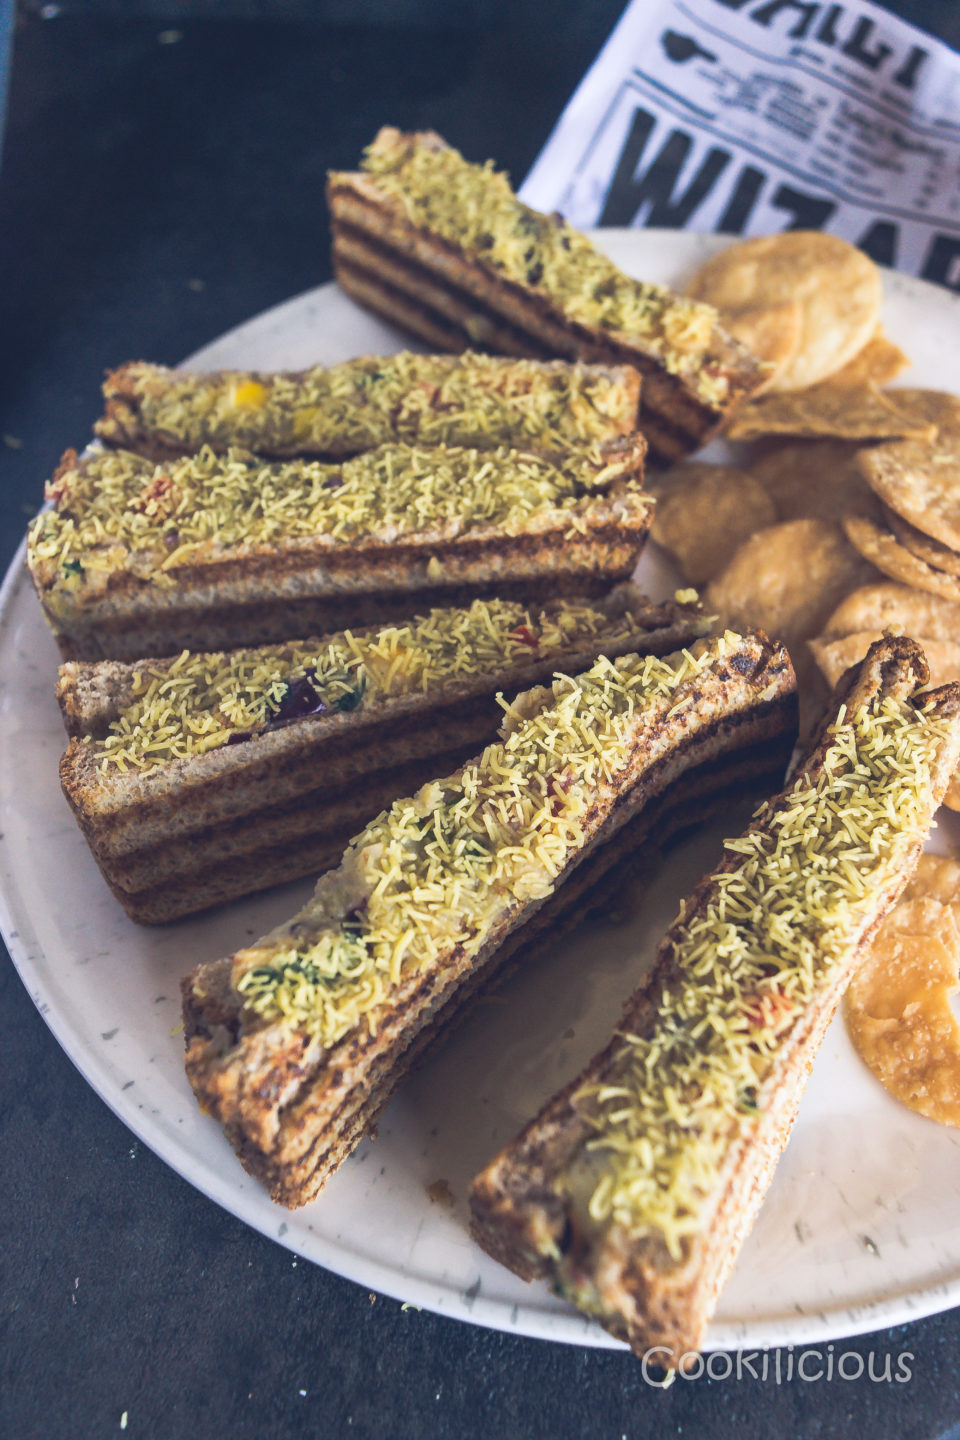 Sev Puri Grill SandwichAppetizers & Snacks Power Breakfasts